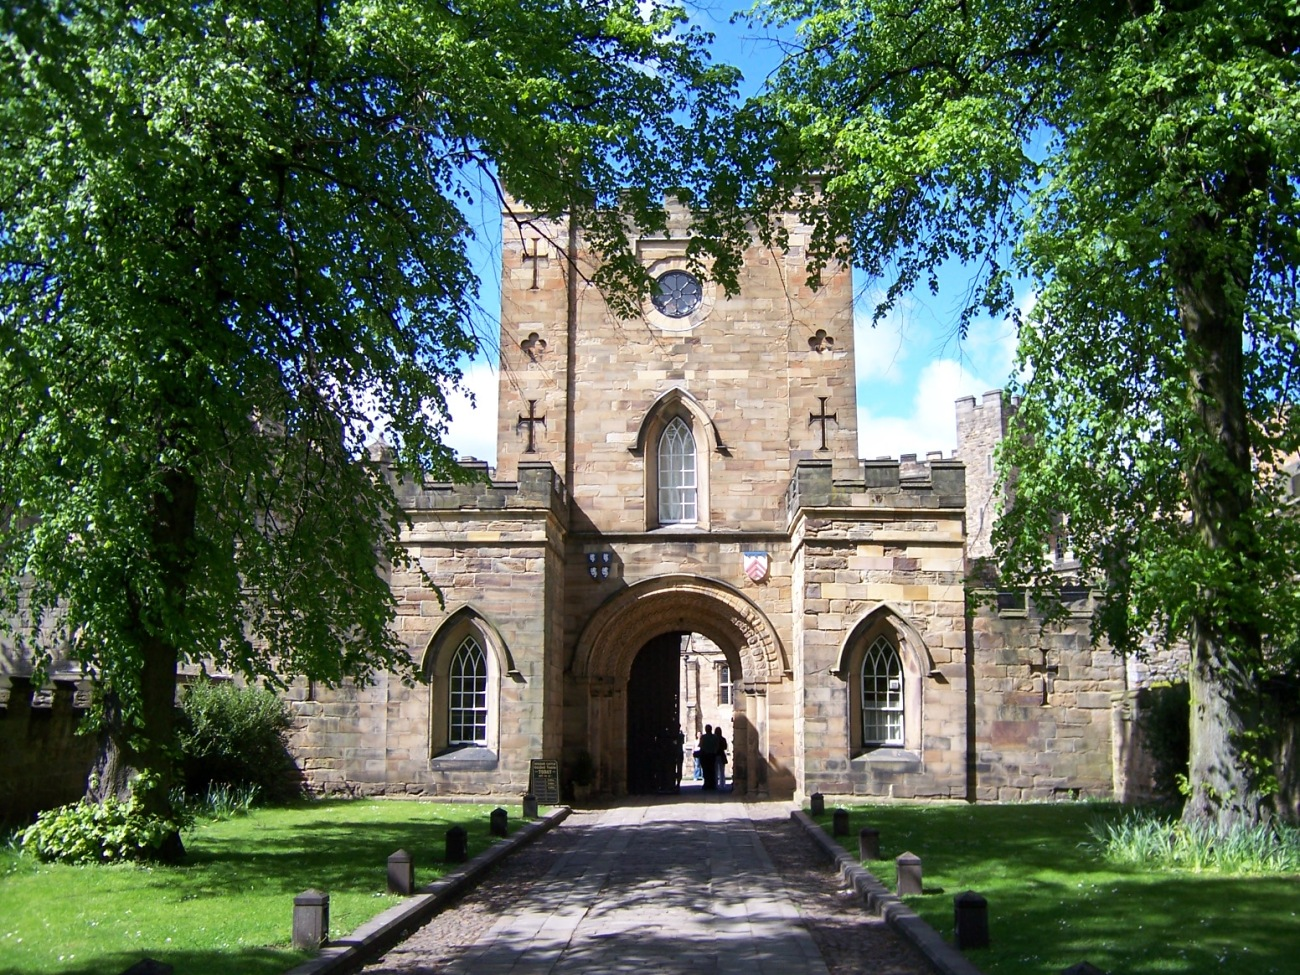 Universidad de Durham